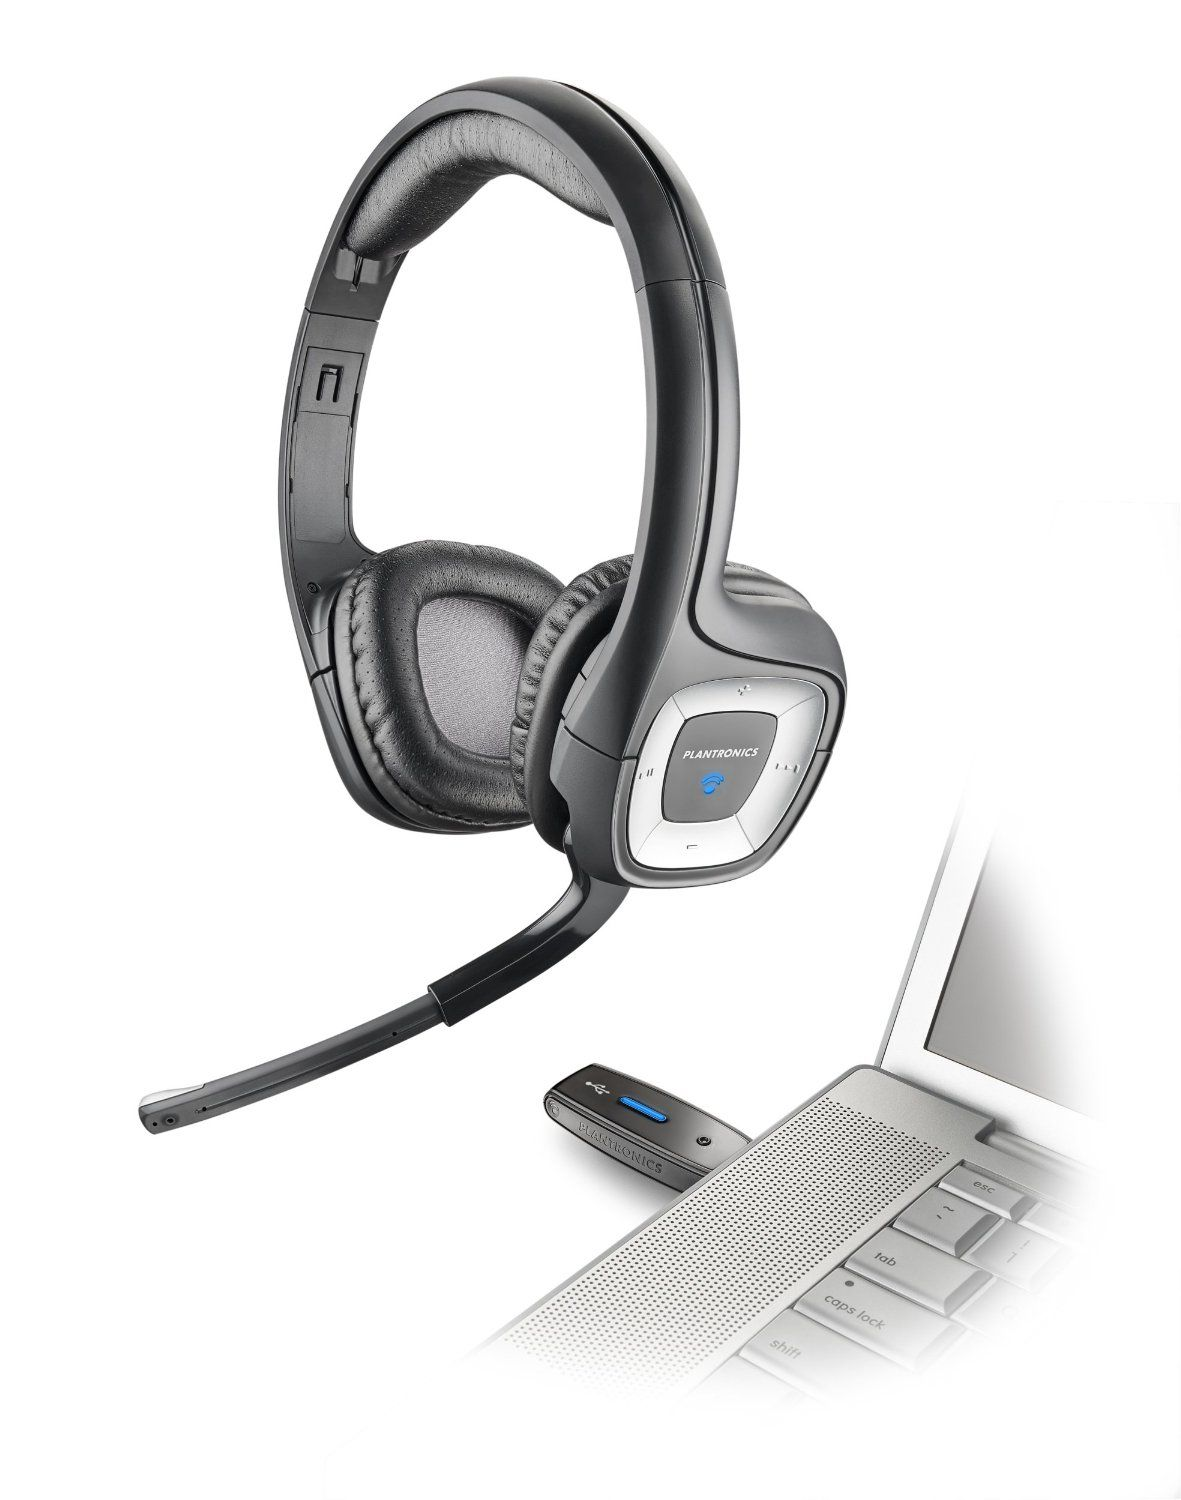 Audio 995 Is A Top Rated Headphone Used For Many Call Center Jobs The Overall Design Makes This Wireless Headphone Plantronics Gaming Headset Wireless Headset